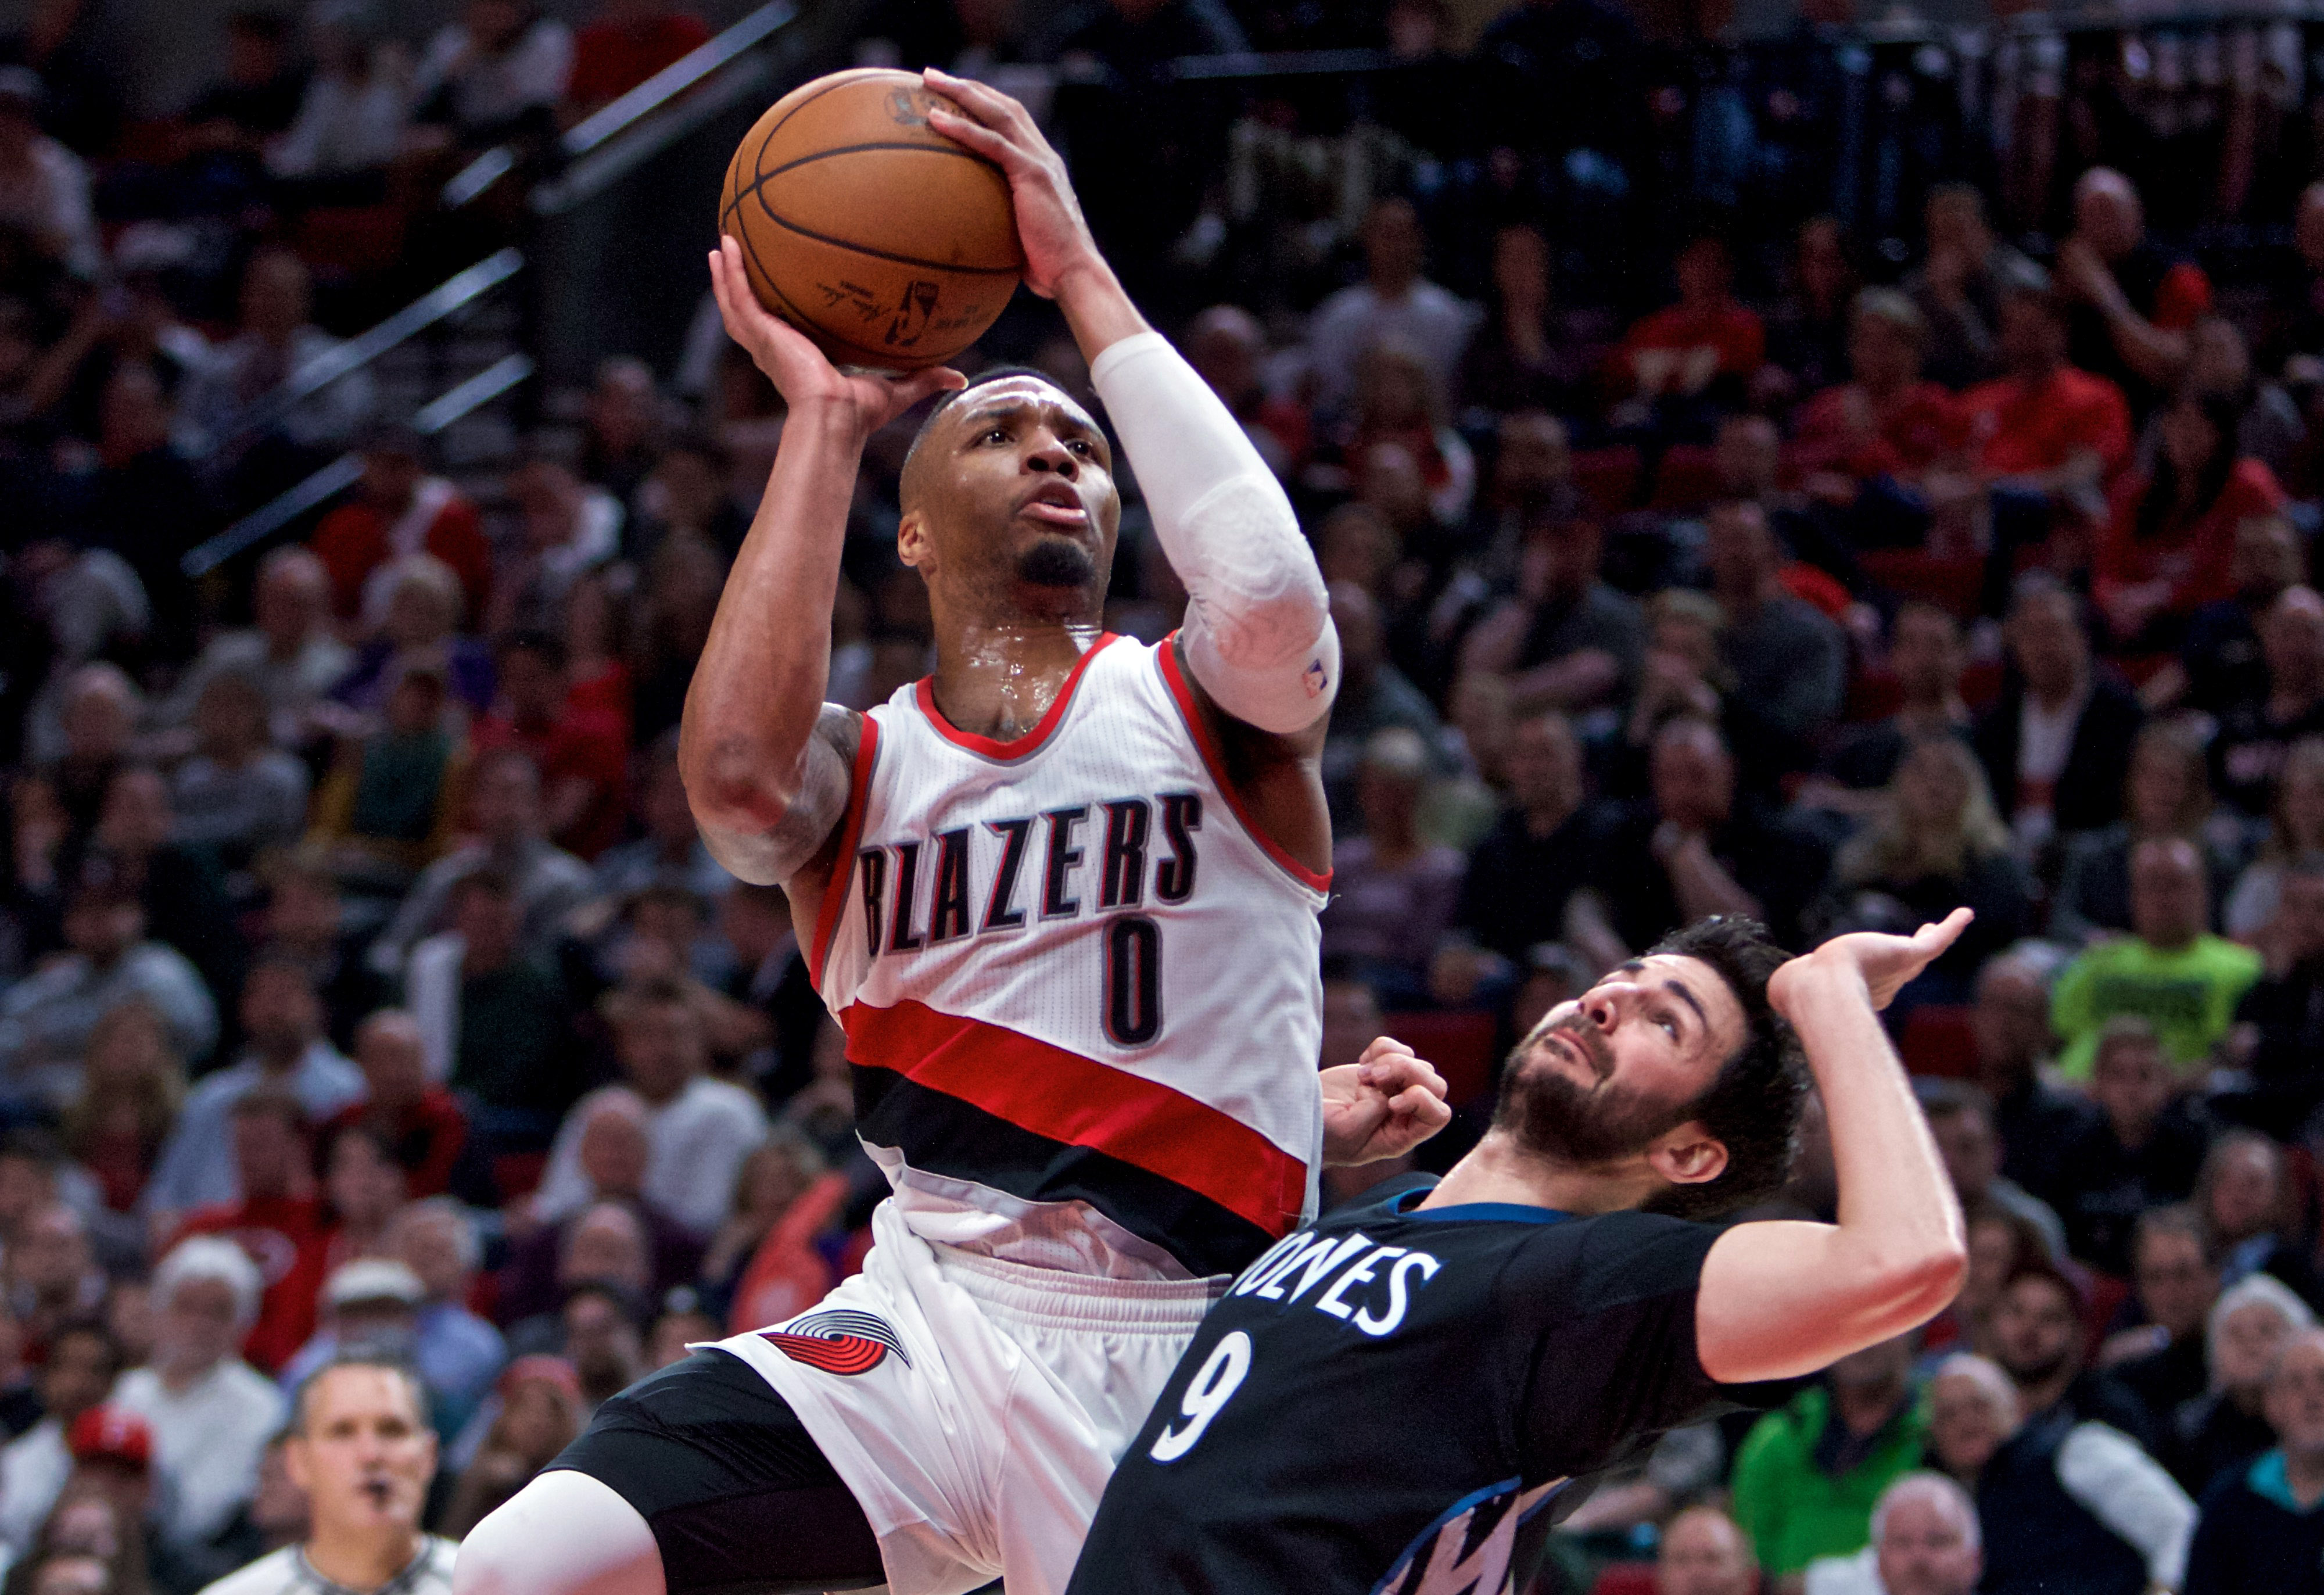 Blazers 1.5 Games Ahead for the Playoffs After TNT Win over Timberwolves